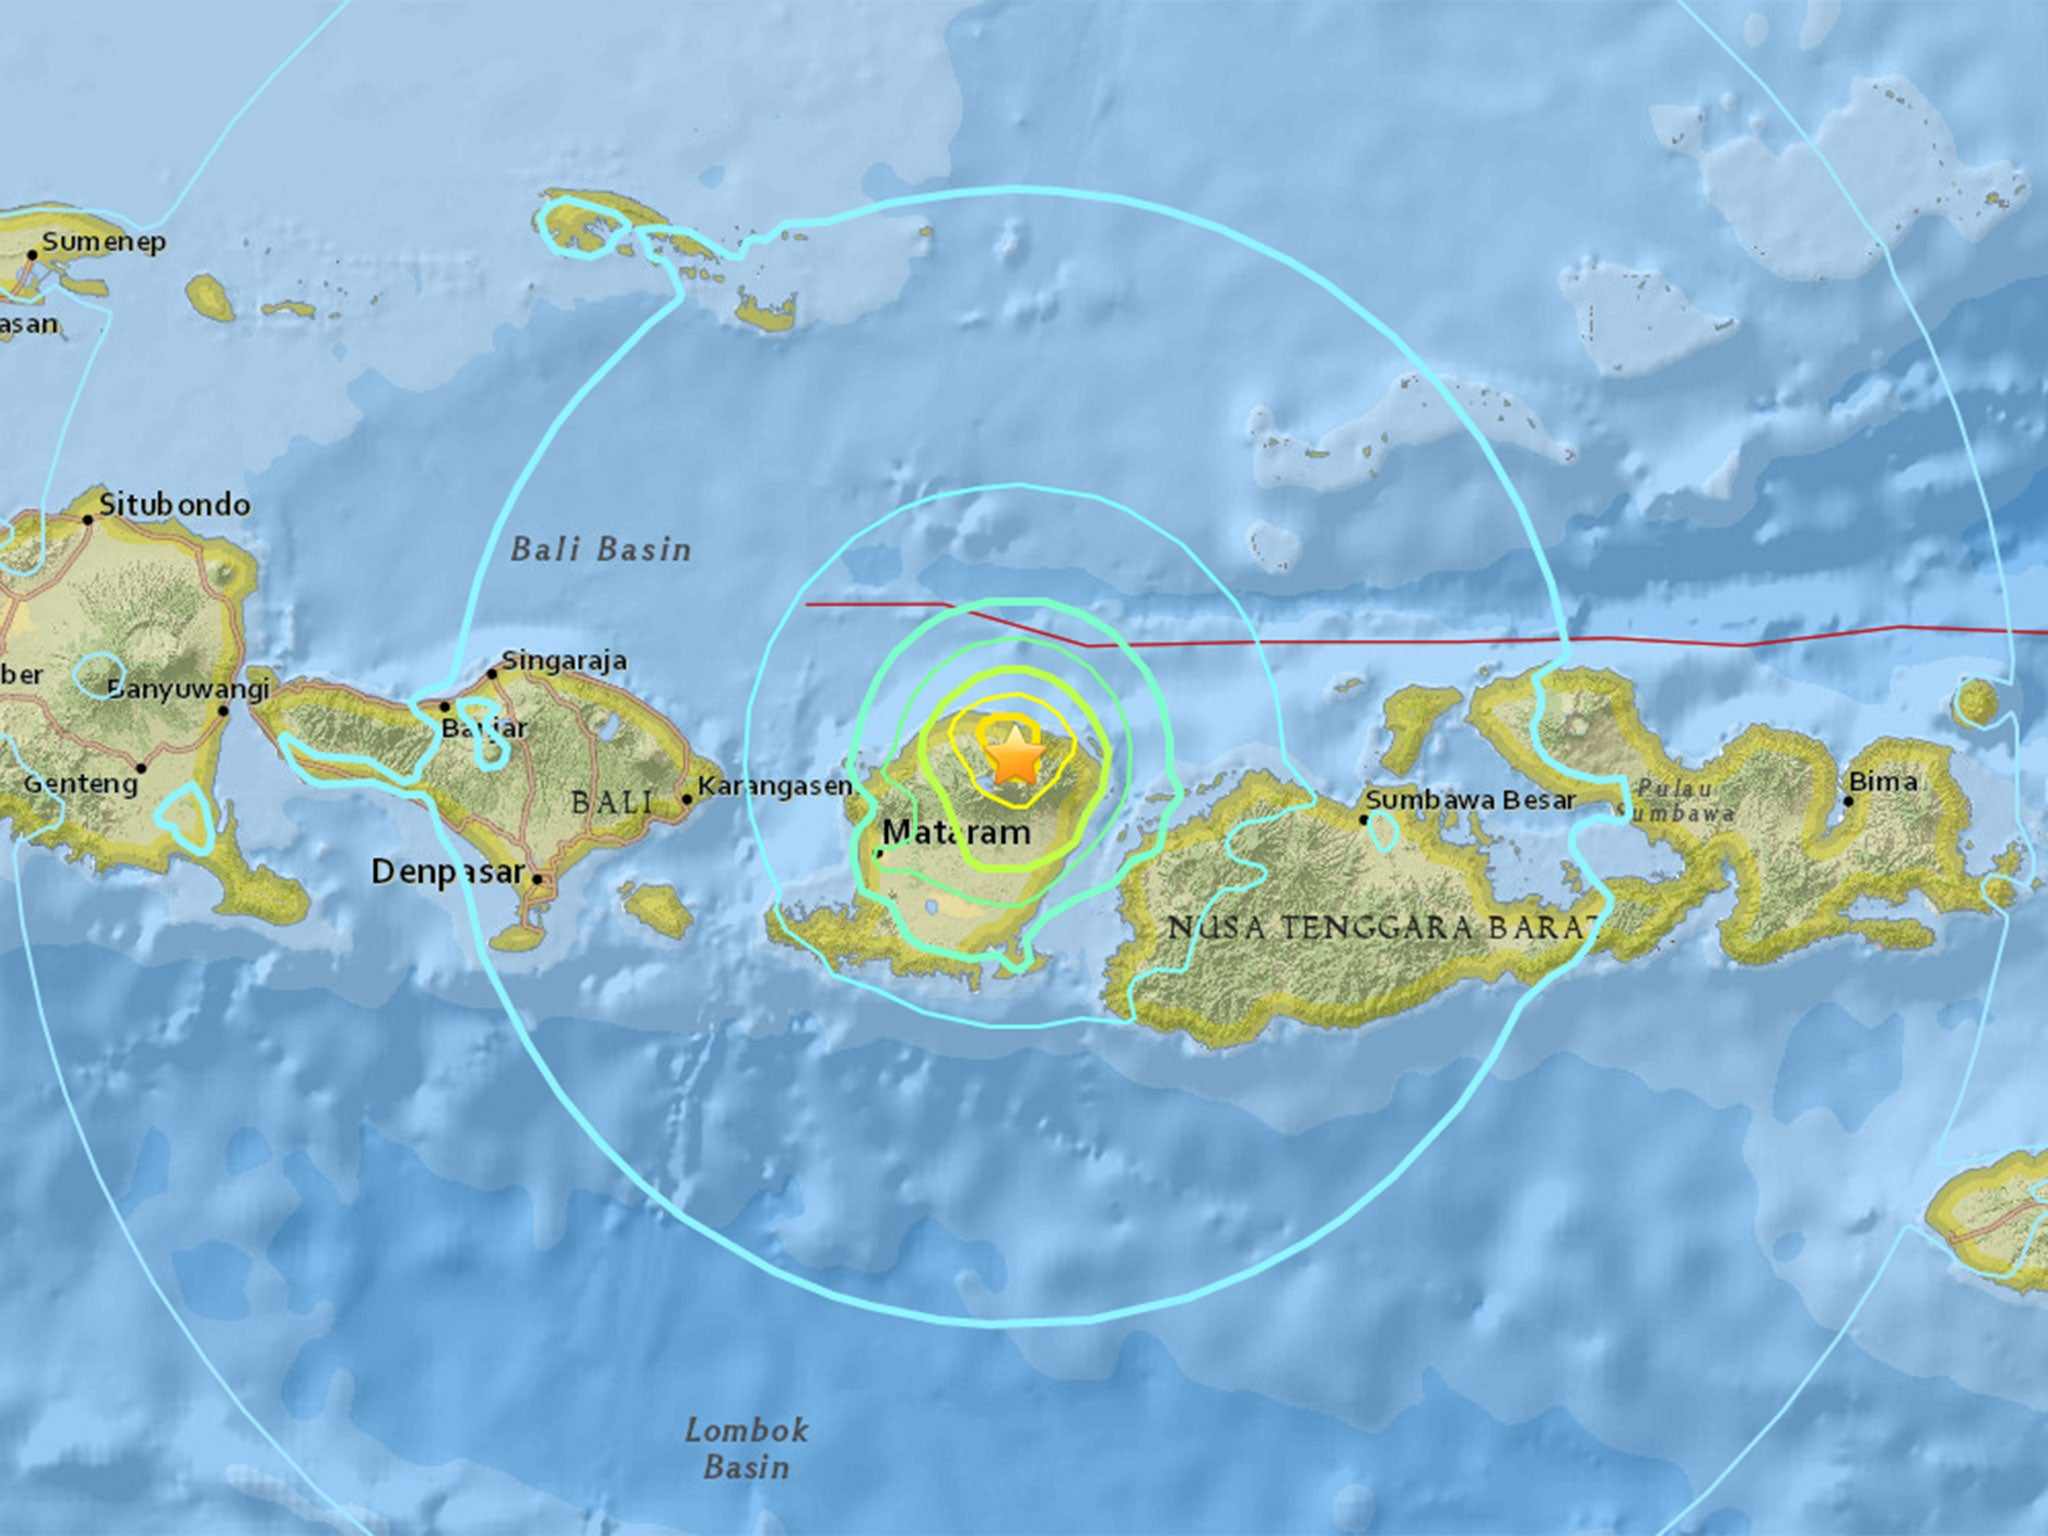 Indonesia earthquake: Powerful 6.4-magnitude quake strikes Lombok island